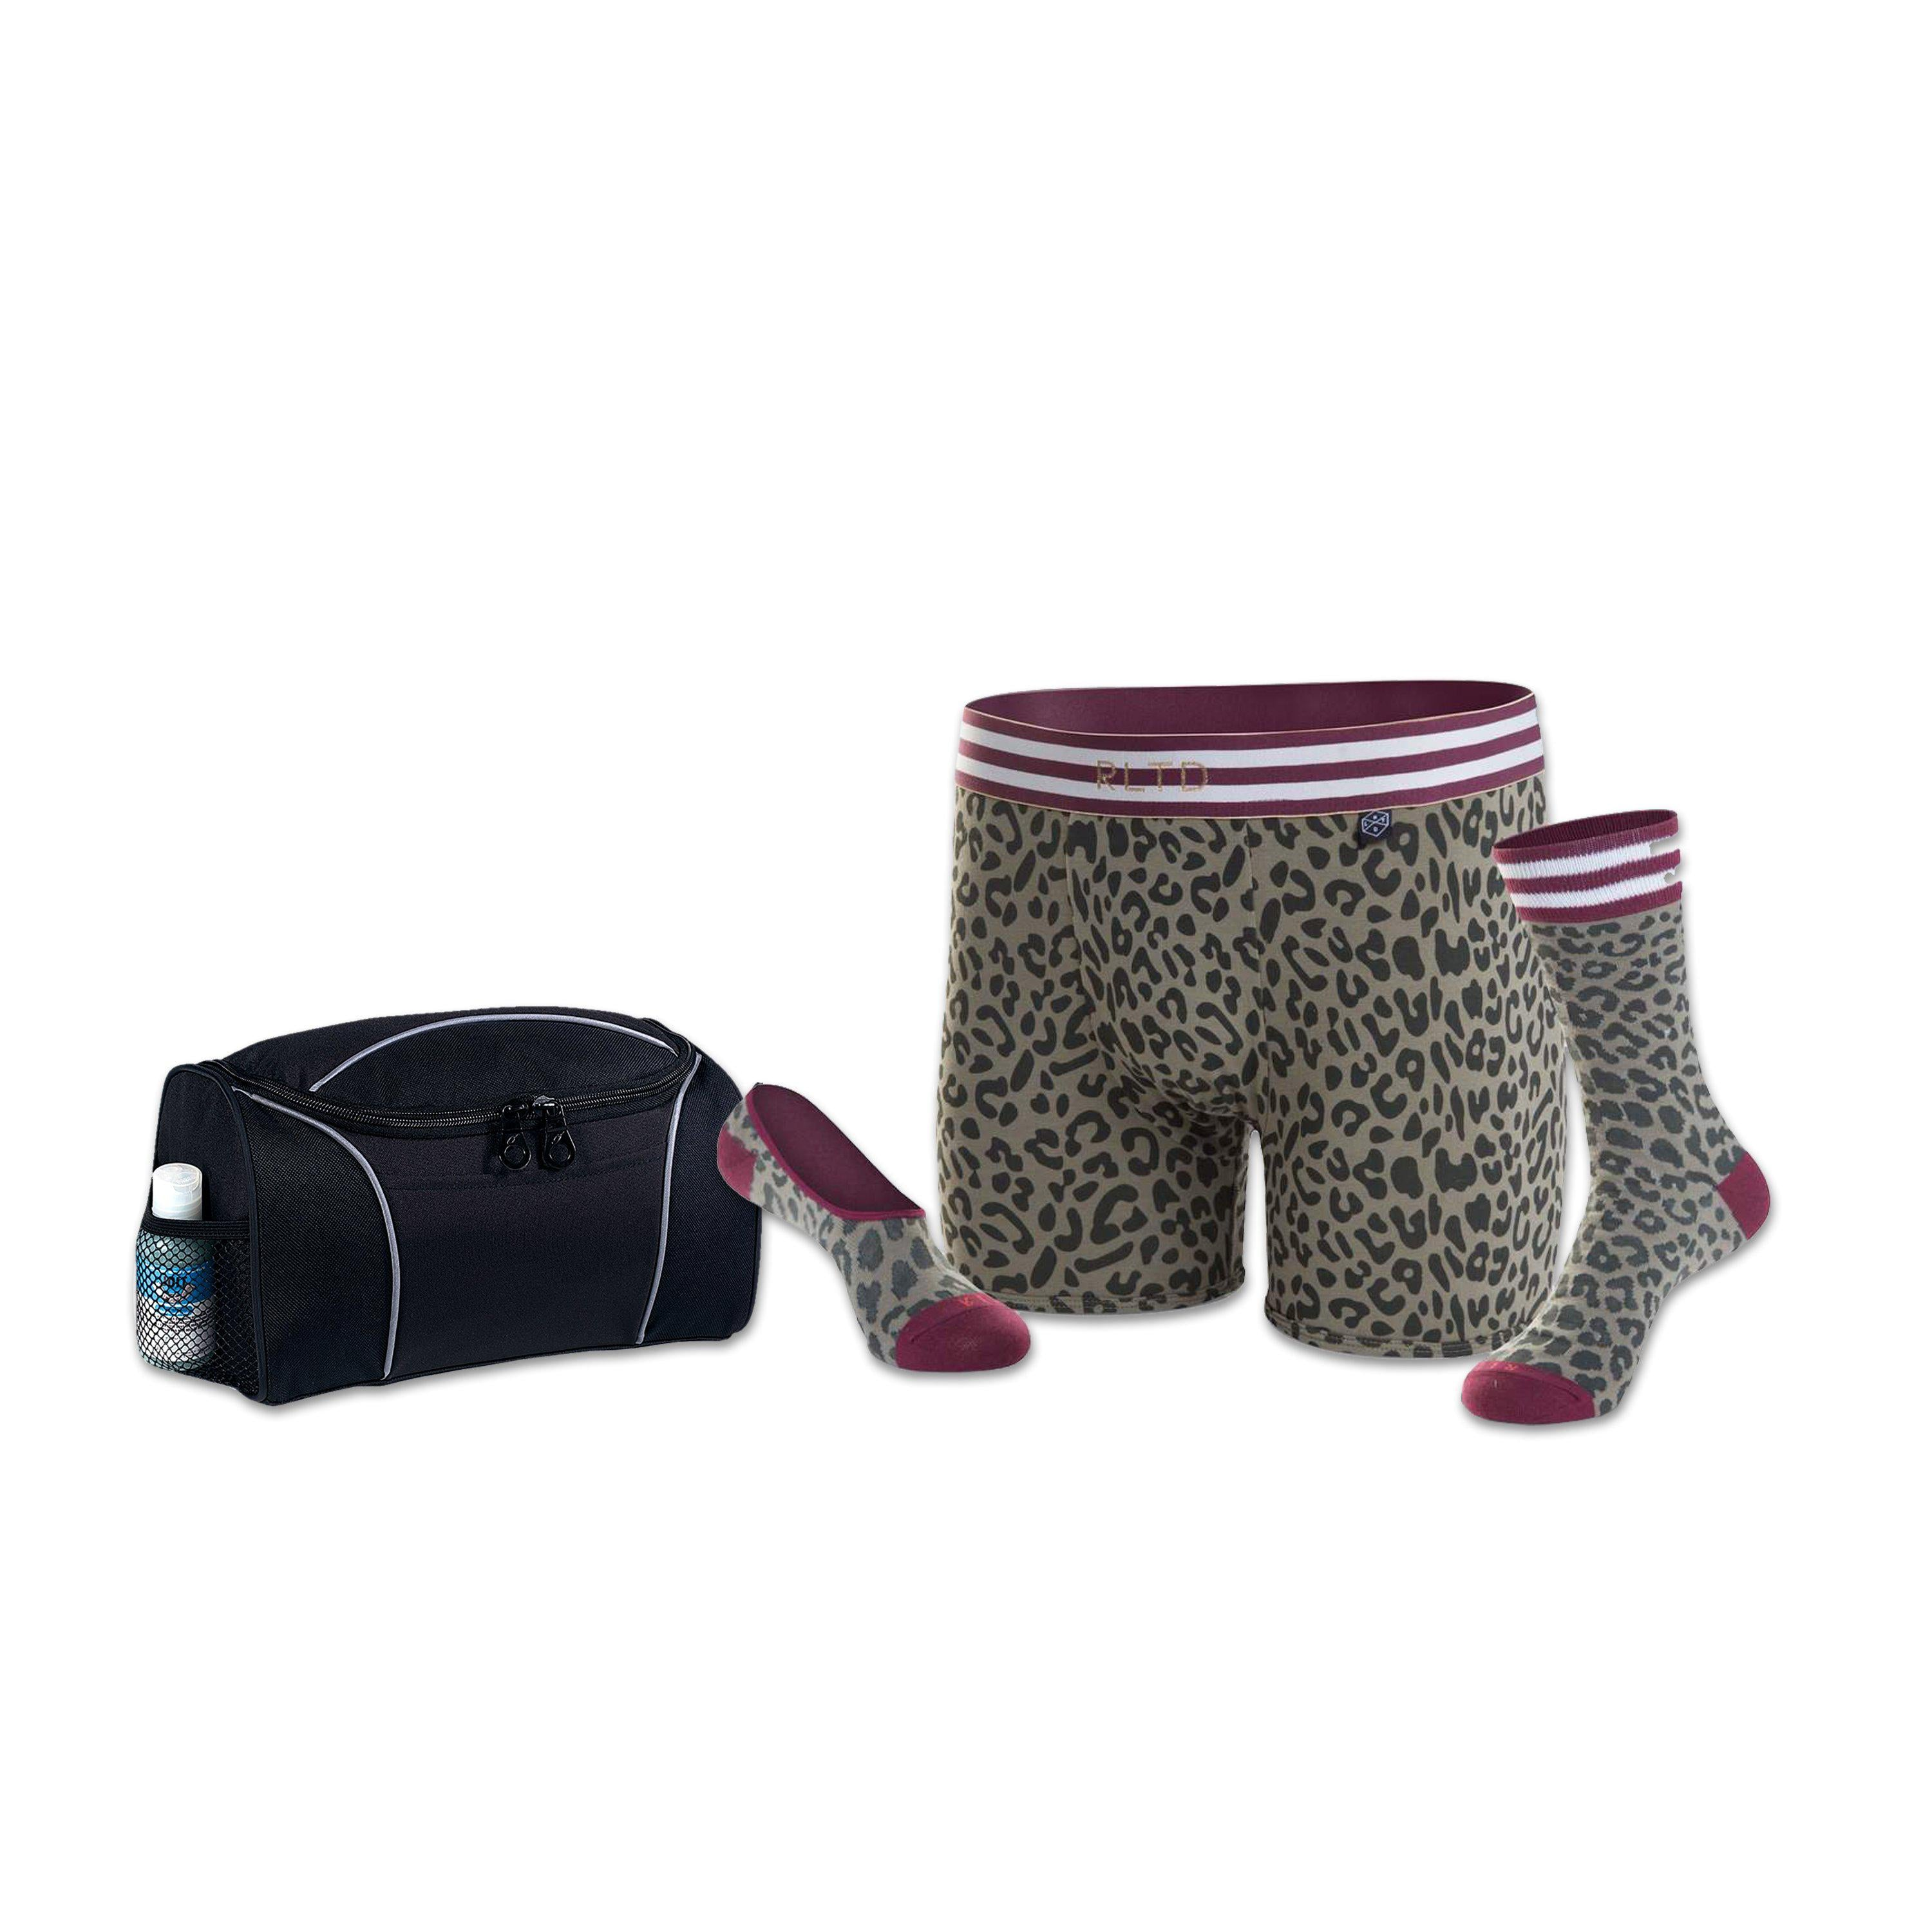 Men's Undergarment Set - Cheetah with Travel Kit